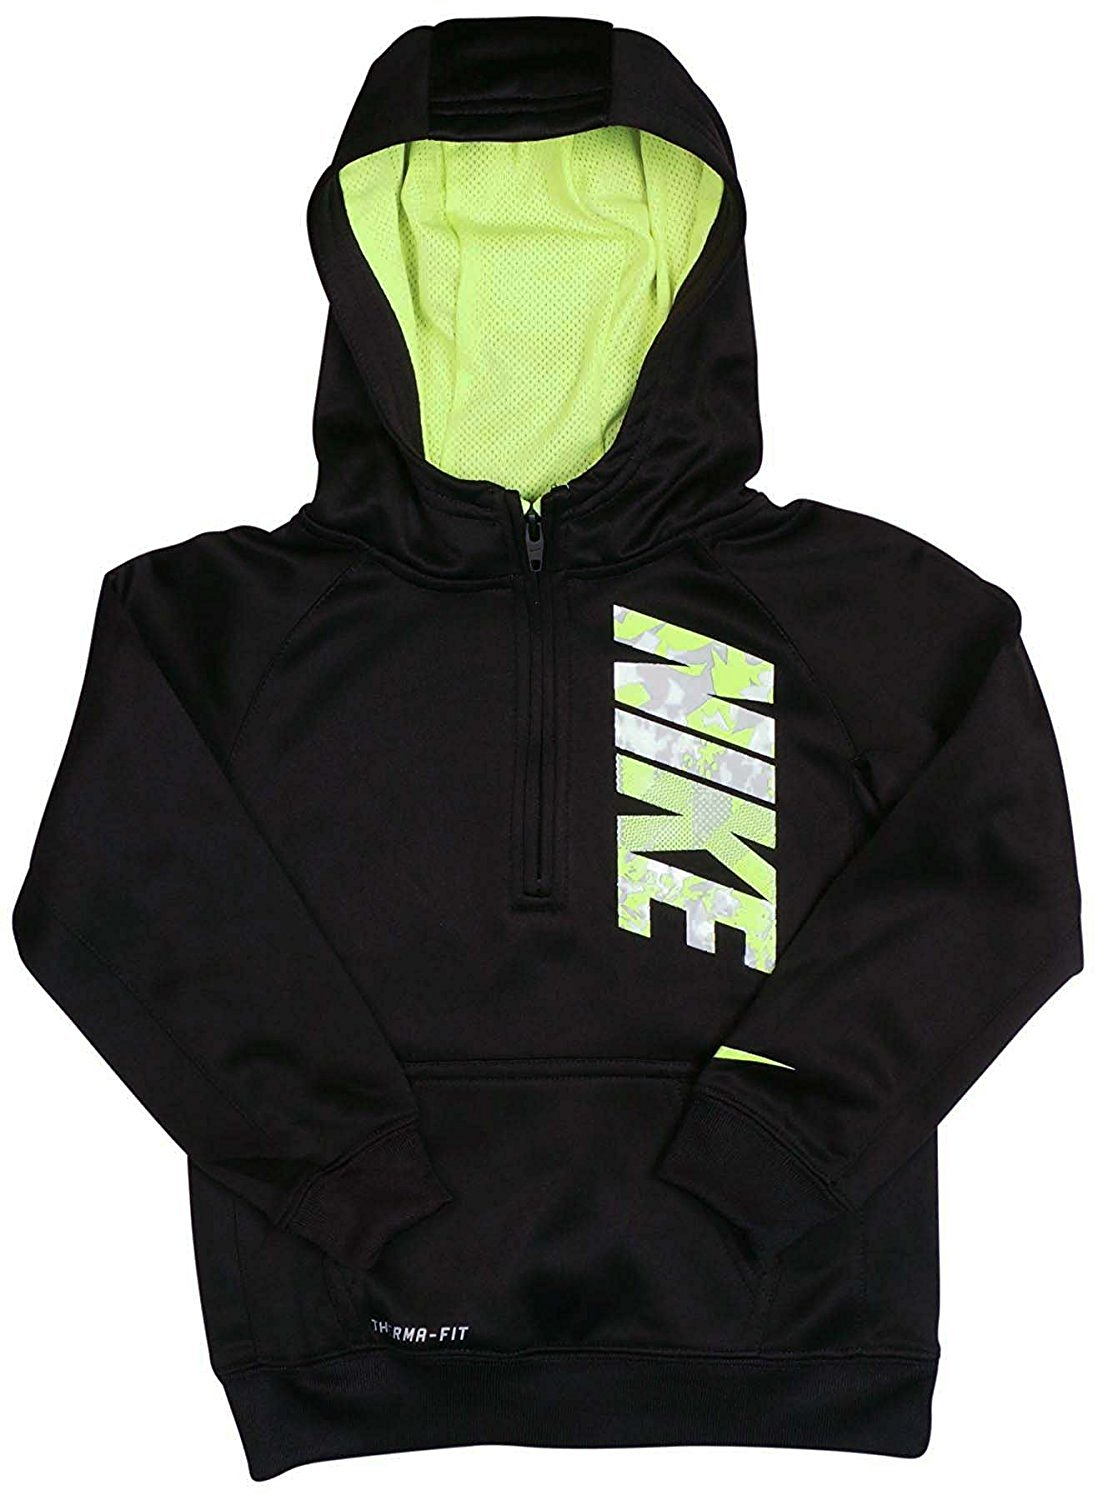 9dd170e9e297 Get Quotations · Nike Little Boy s Black Fleece Lined Therma-fit Pullover  Hoodie